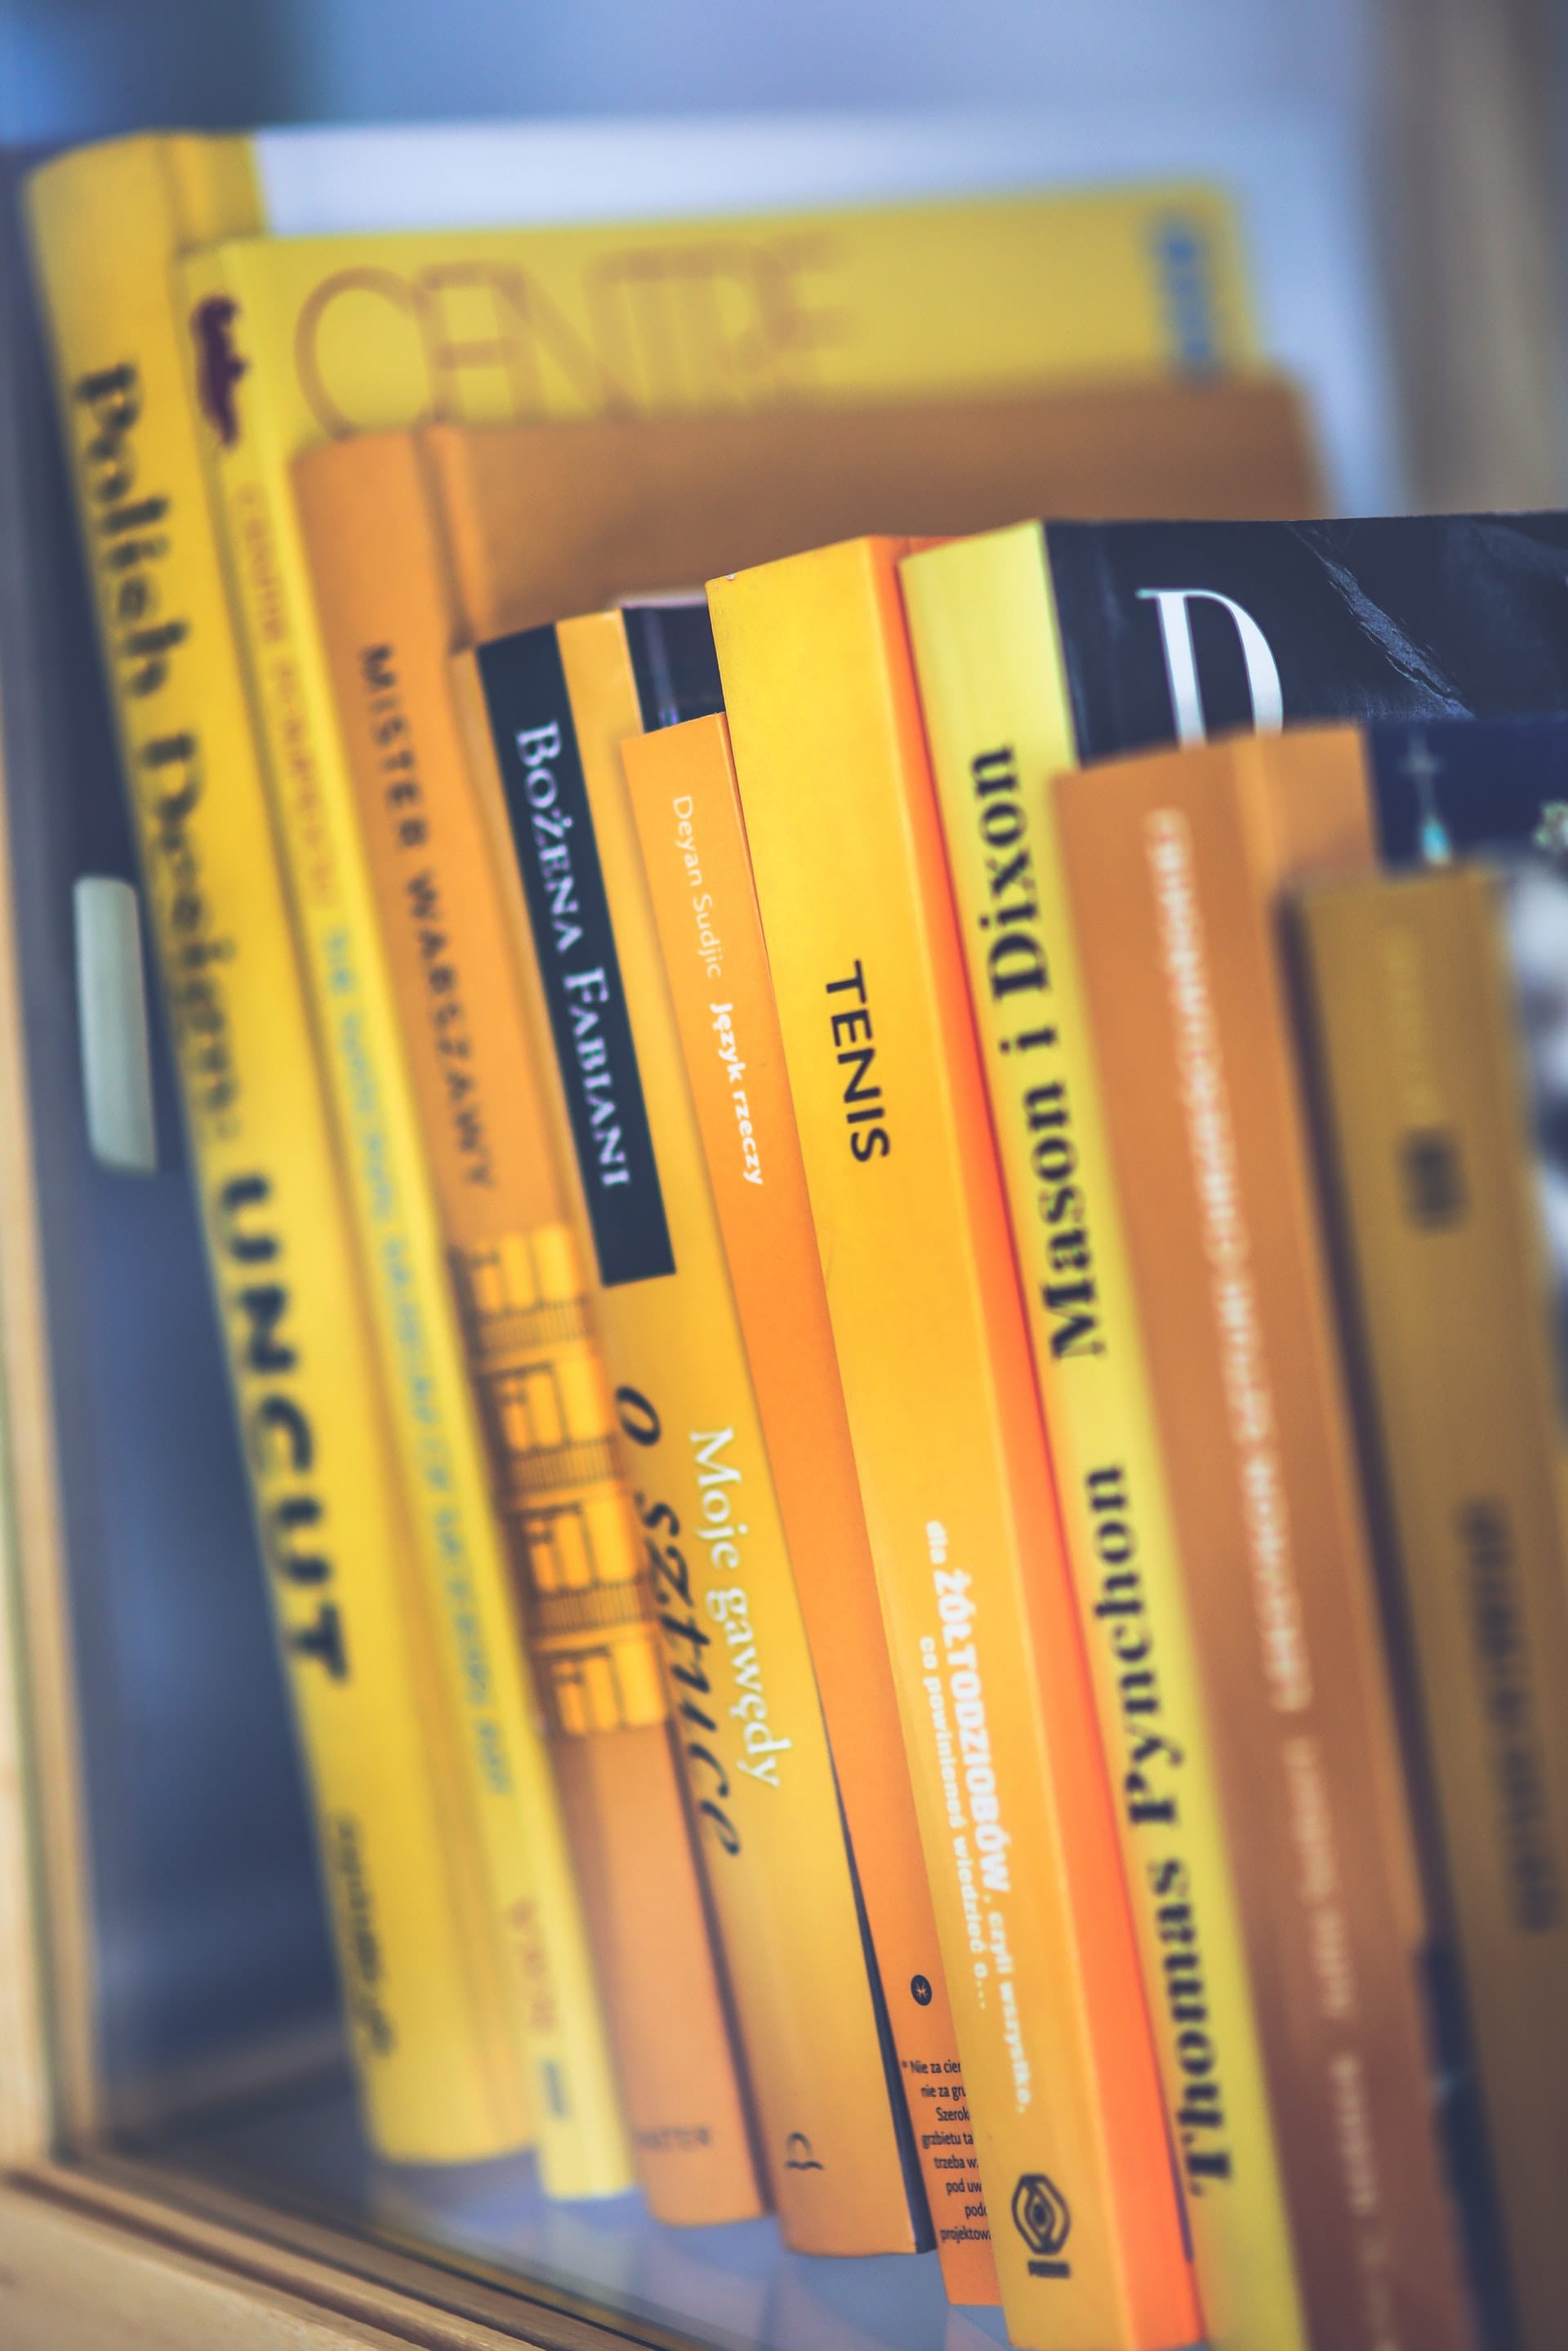 books-yellow-book-reading